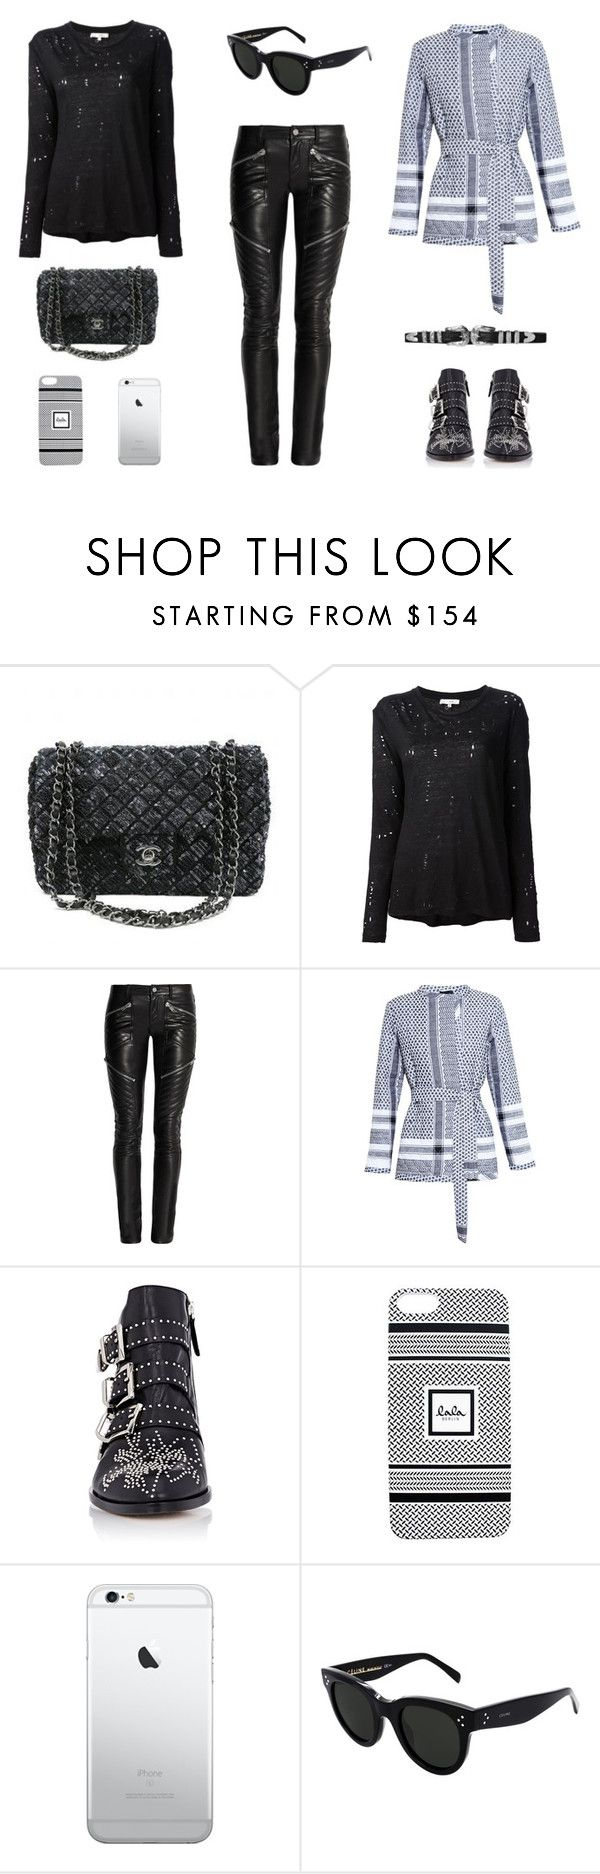 128 the night out look by caroline mathilde liked on polyvore